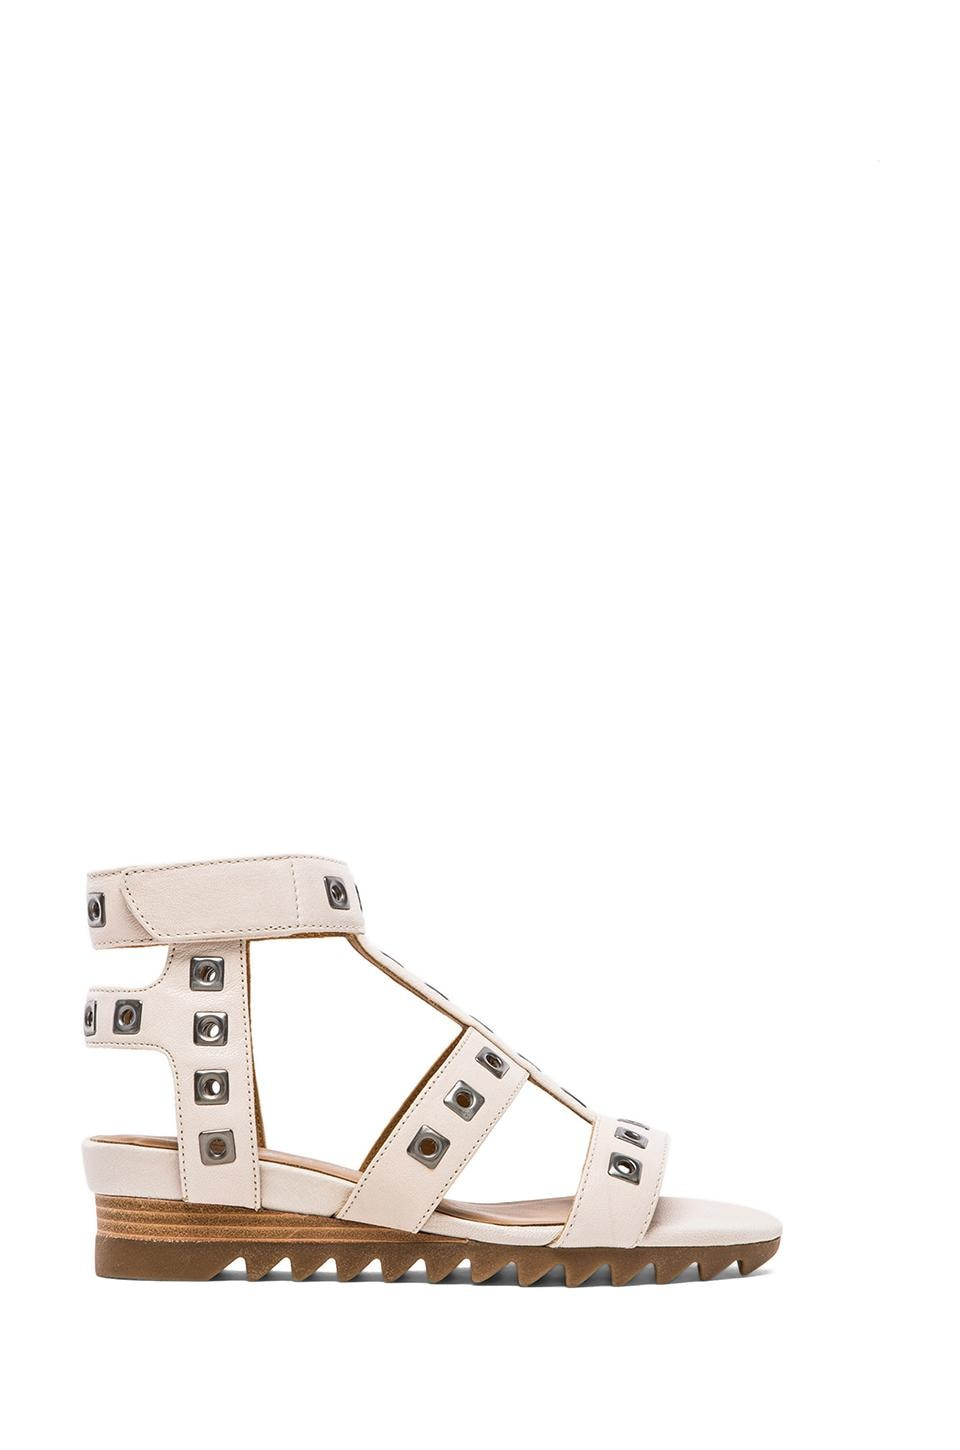 Luxury Rebel Elena Sandal in Aria